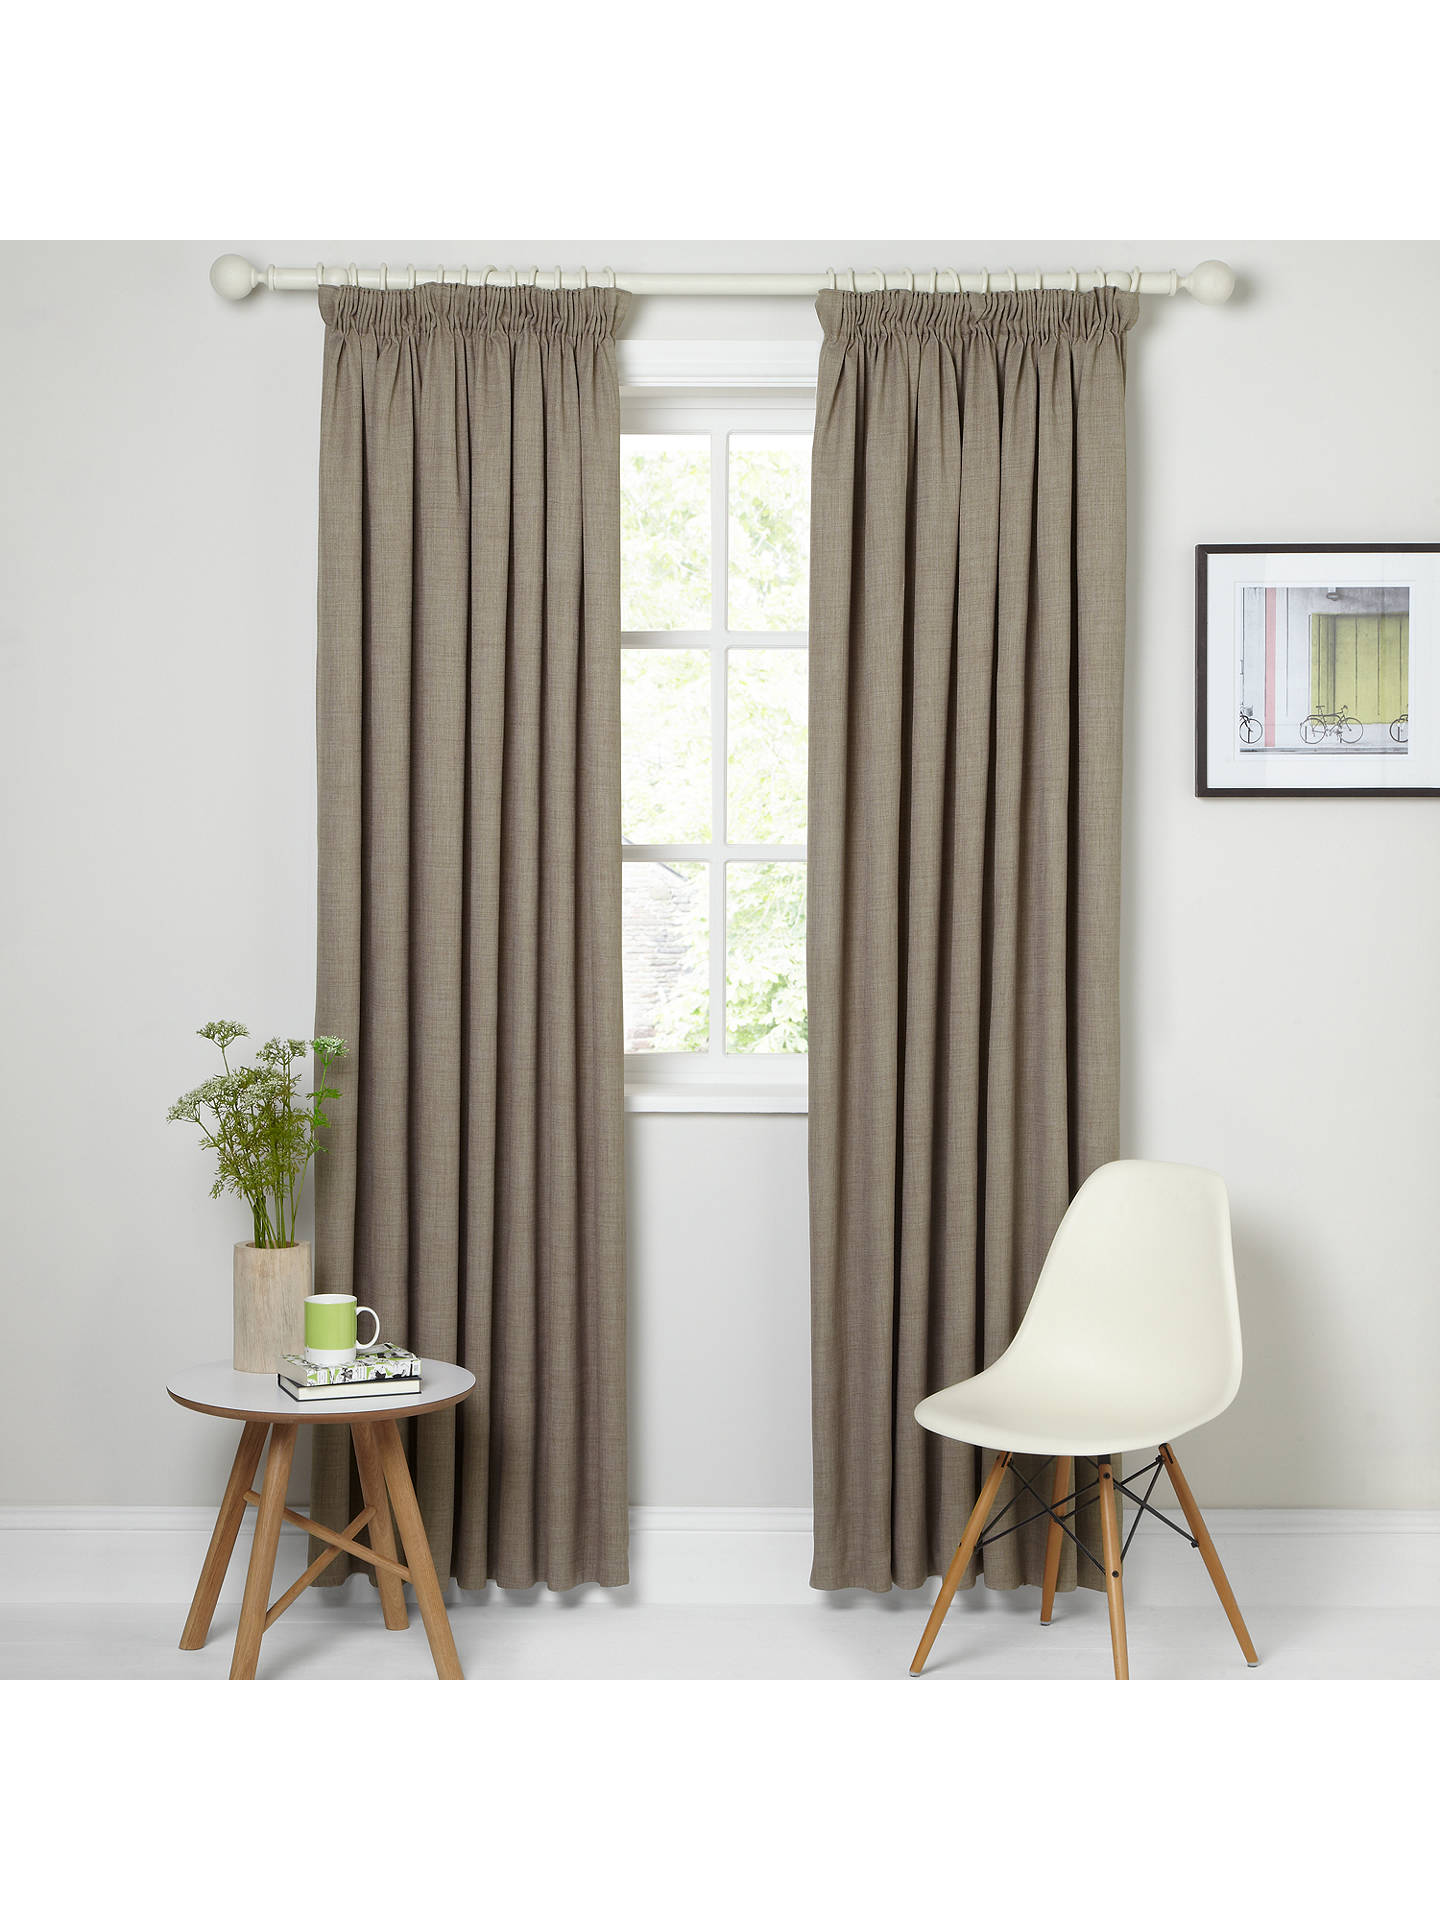 Buy John Lewis & Partners Barathea Pair Blackout Lined Pencil Pleat Curtains, Mocha, W117 x Drop 137cm Online at johnlewis.com